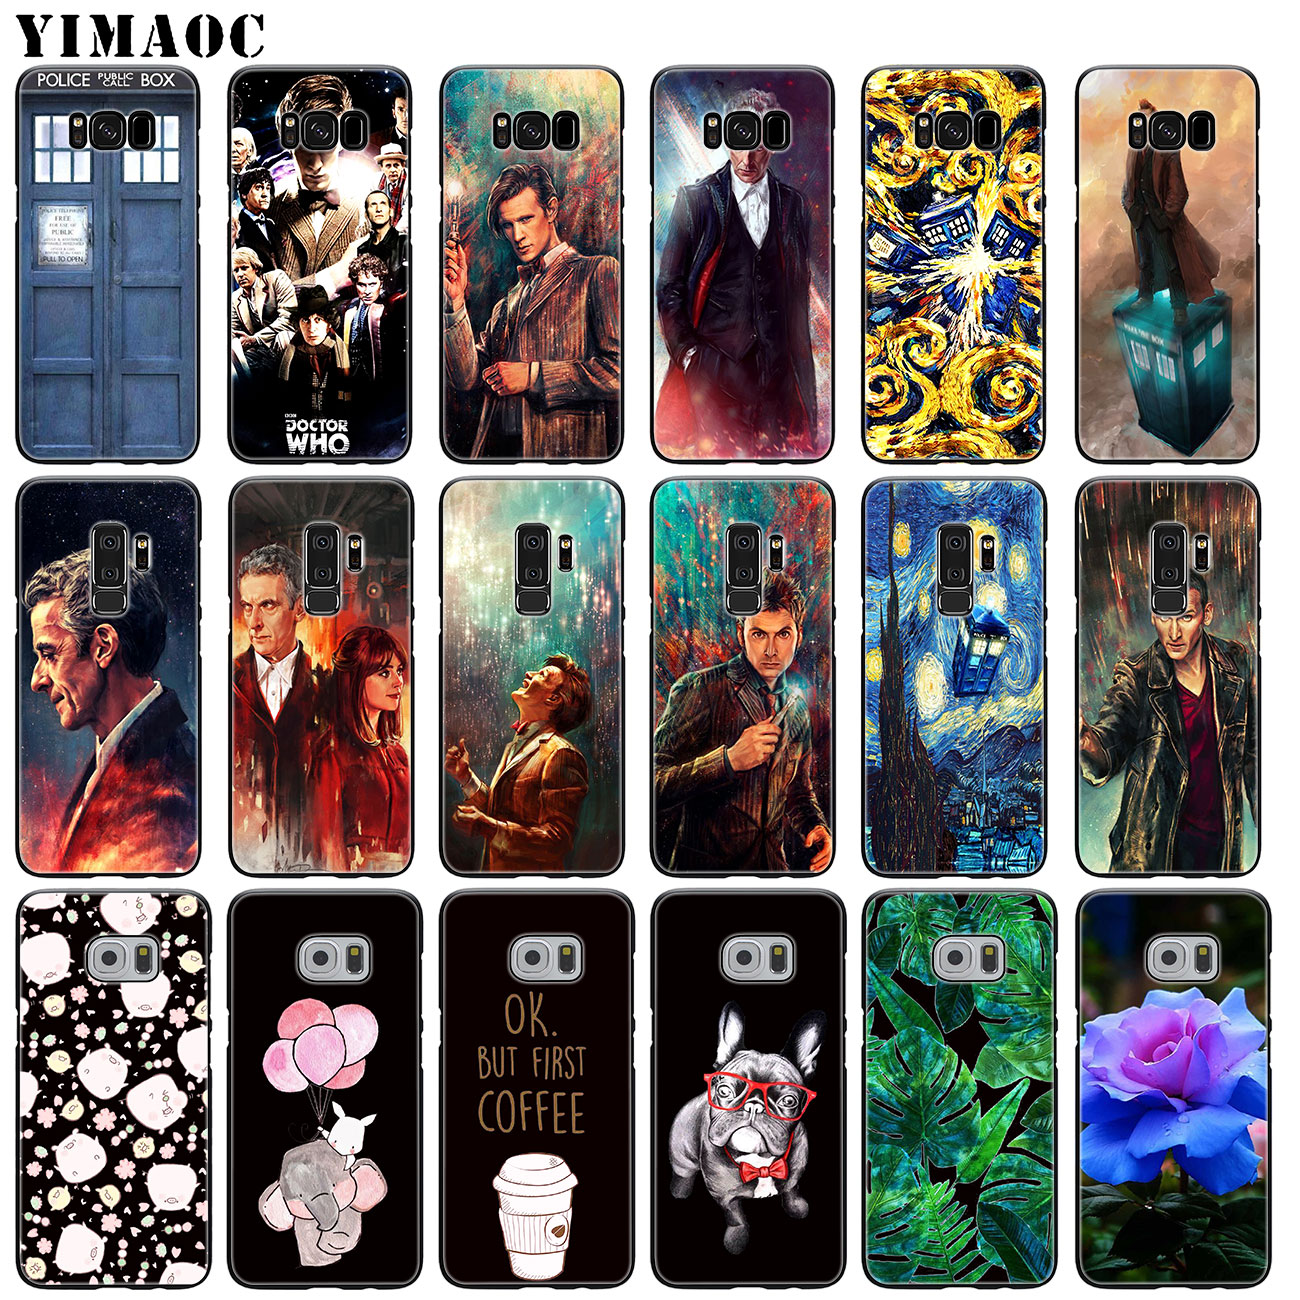 Fitted Cases Sporting Yimaoc Tardis Box Doctor Who Soft Silicone Case For Samsung Galaxy S10 Plus S9 S8 Plus S6 S7 Edge S10e E Tpu Black Flower Cover Luxuriant In Design Cellphones & Telecommunications